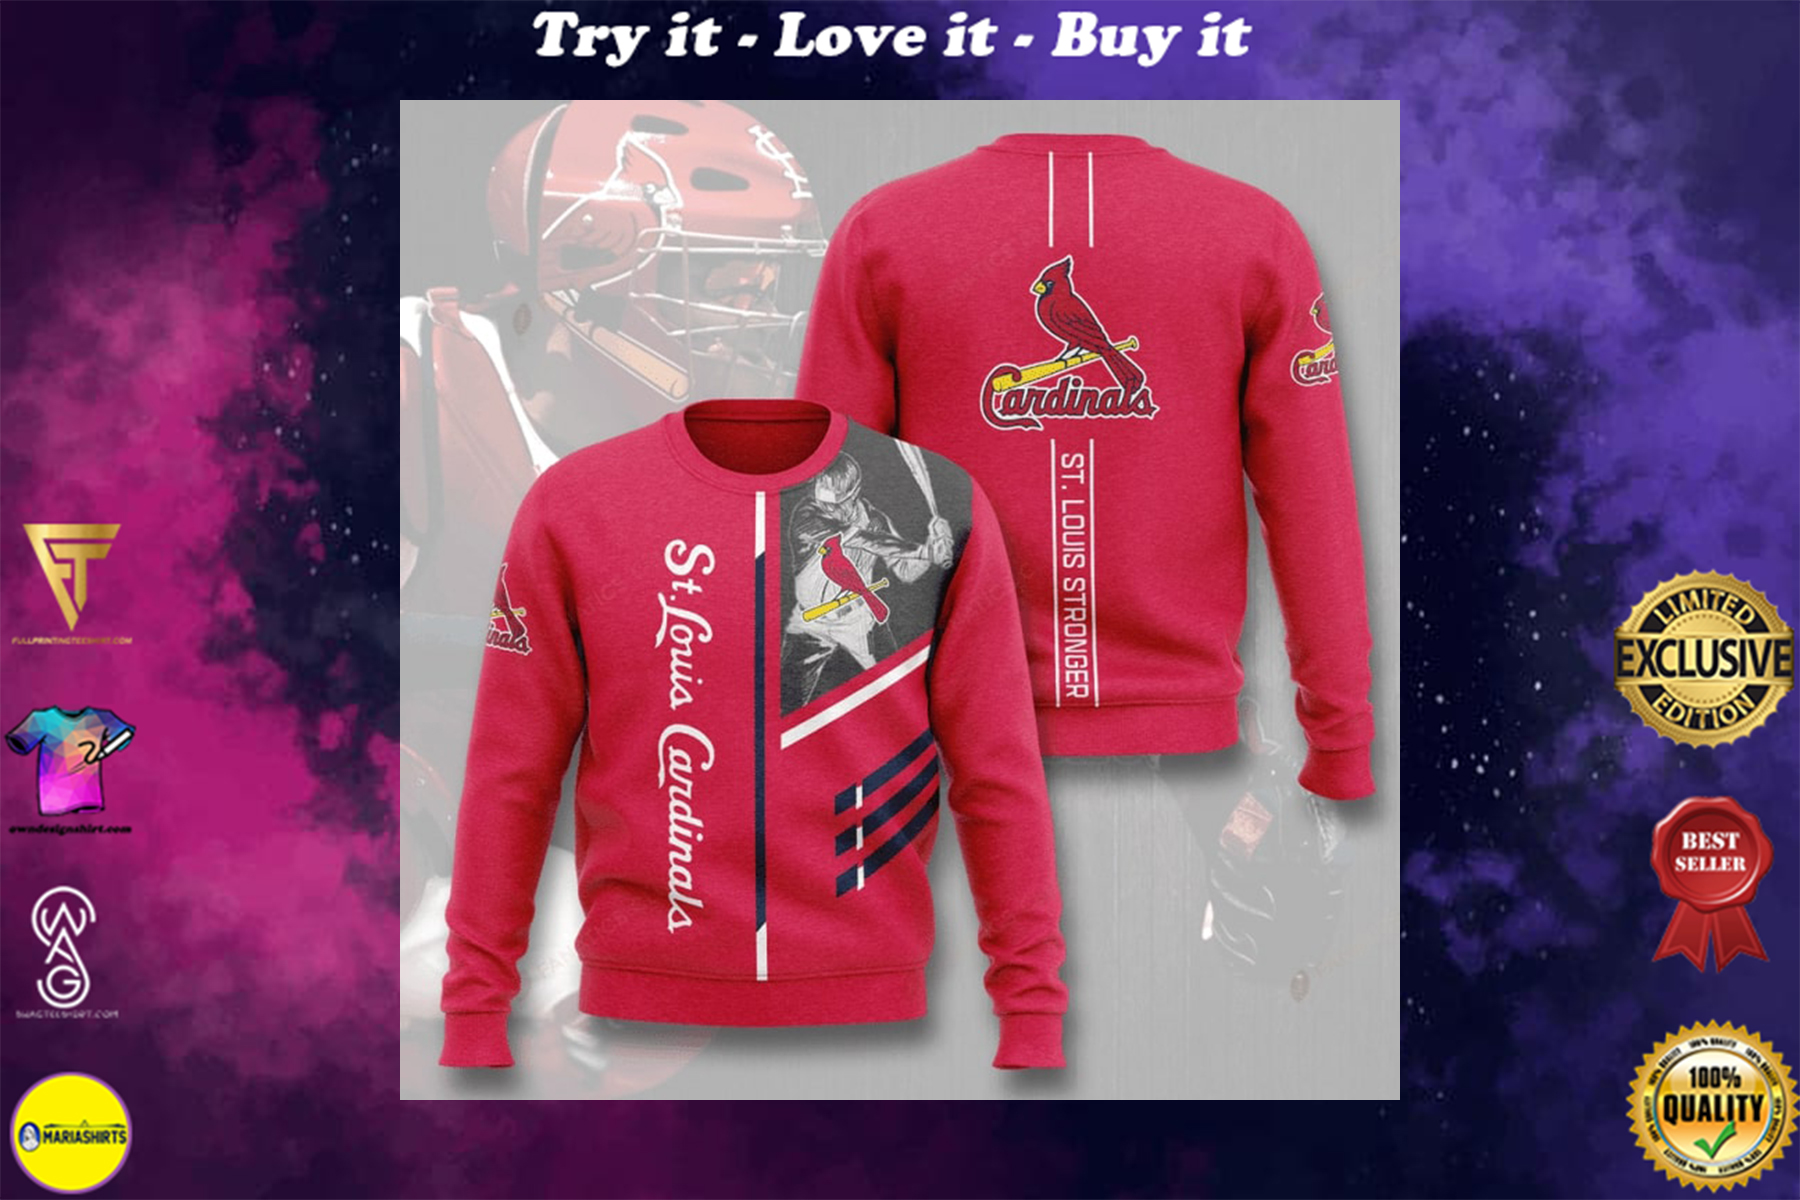 [highest selling] st louis cardinals st louis stronger full printing ugly sweater - maria